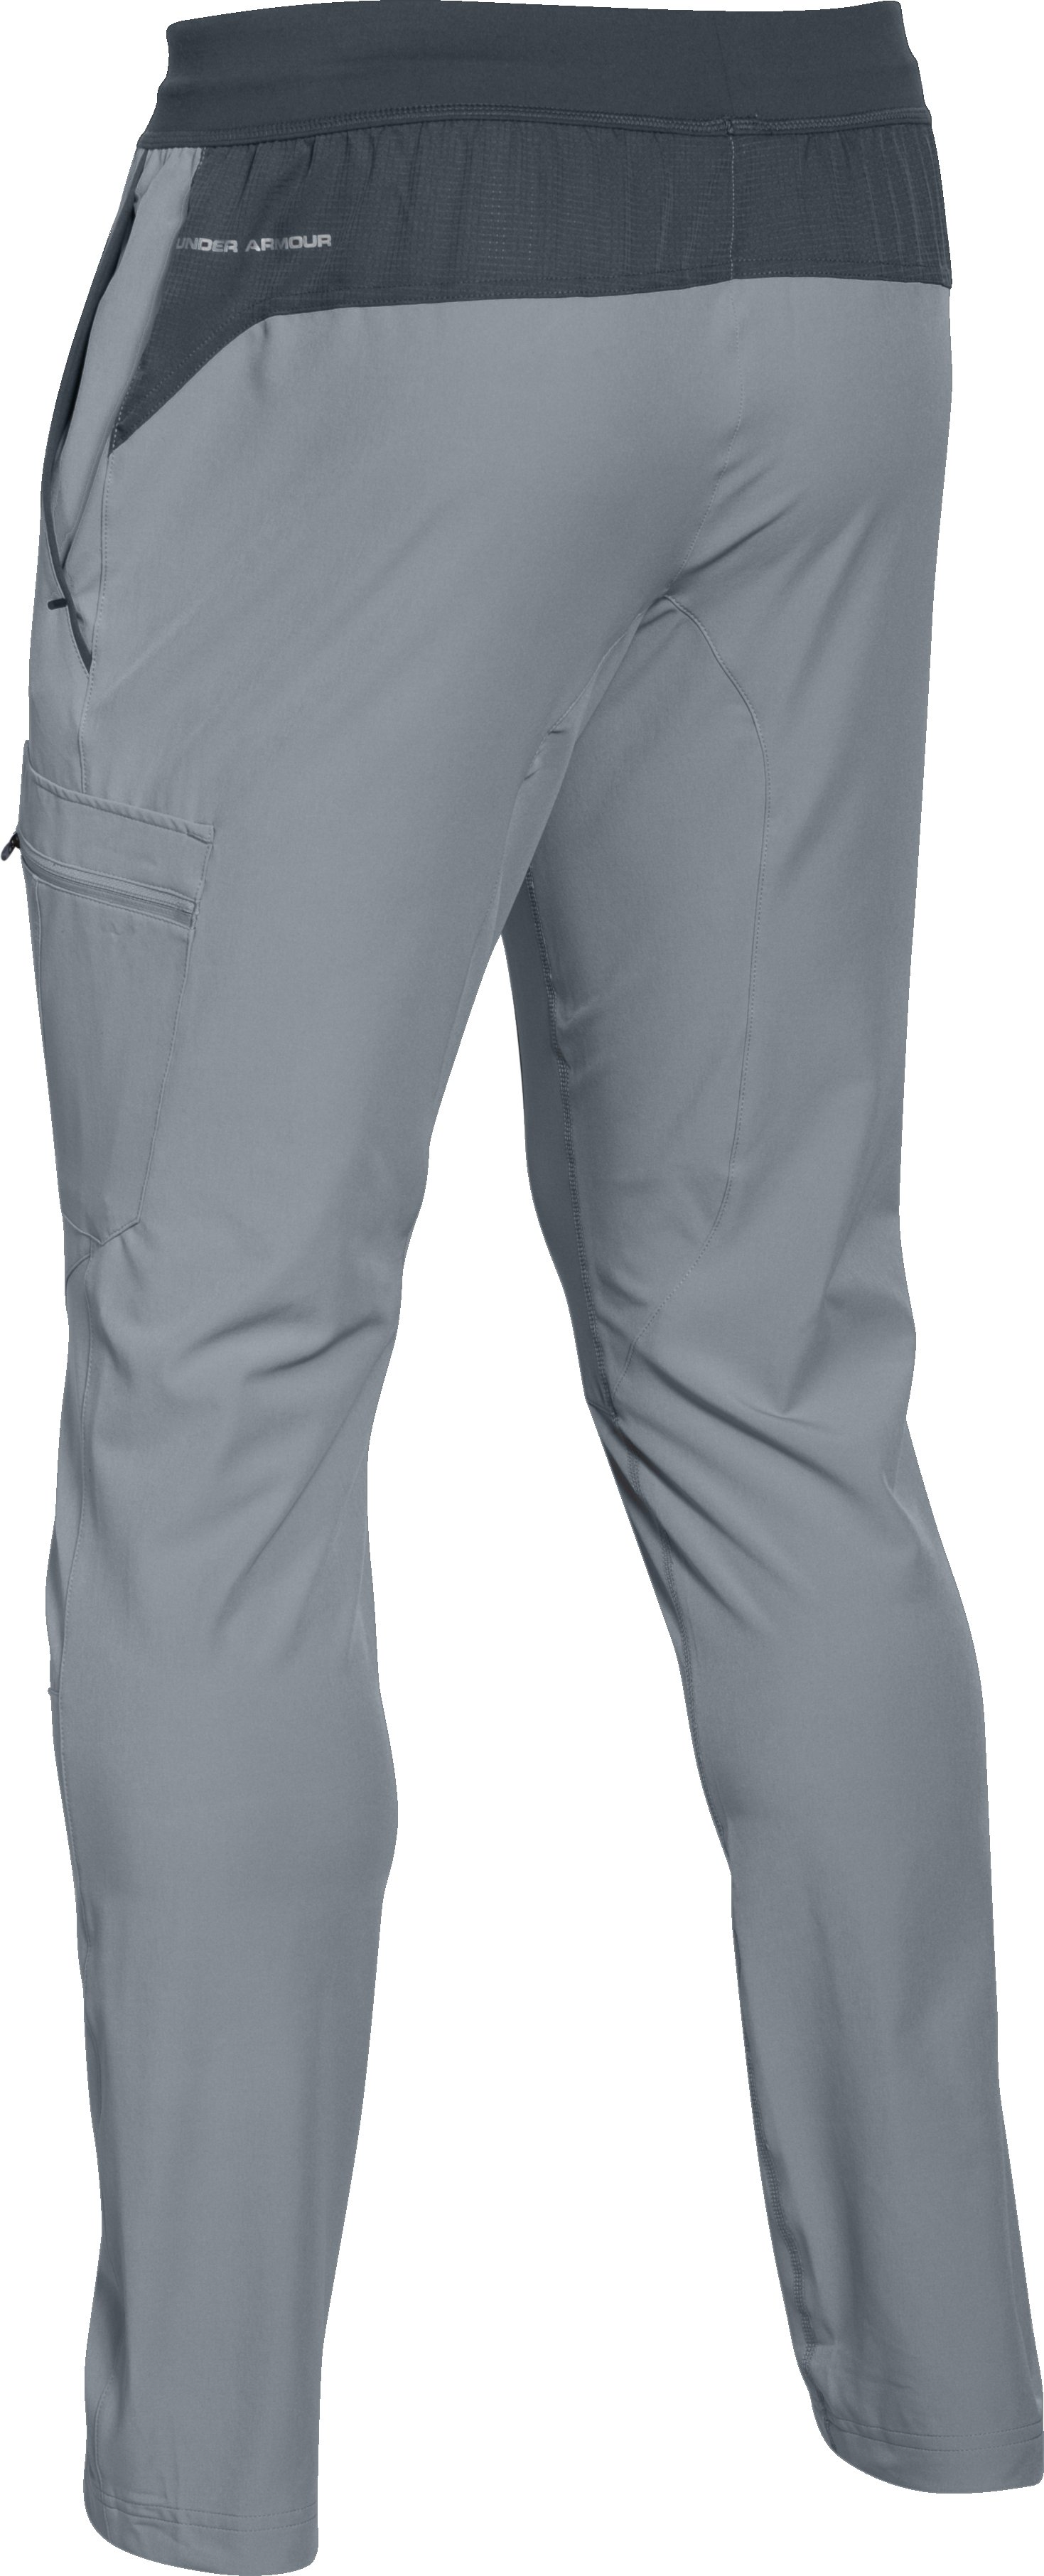 Men's UA Tapered Woven Pants, Steel